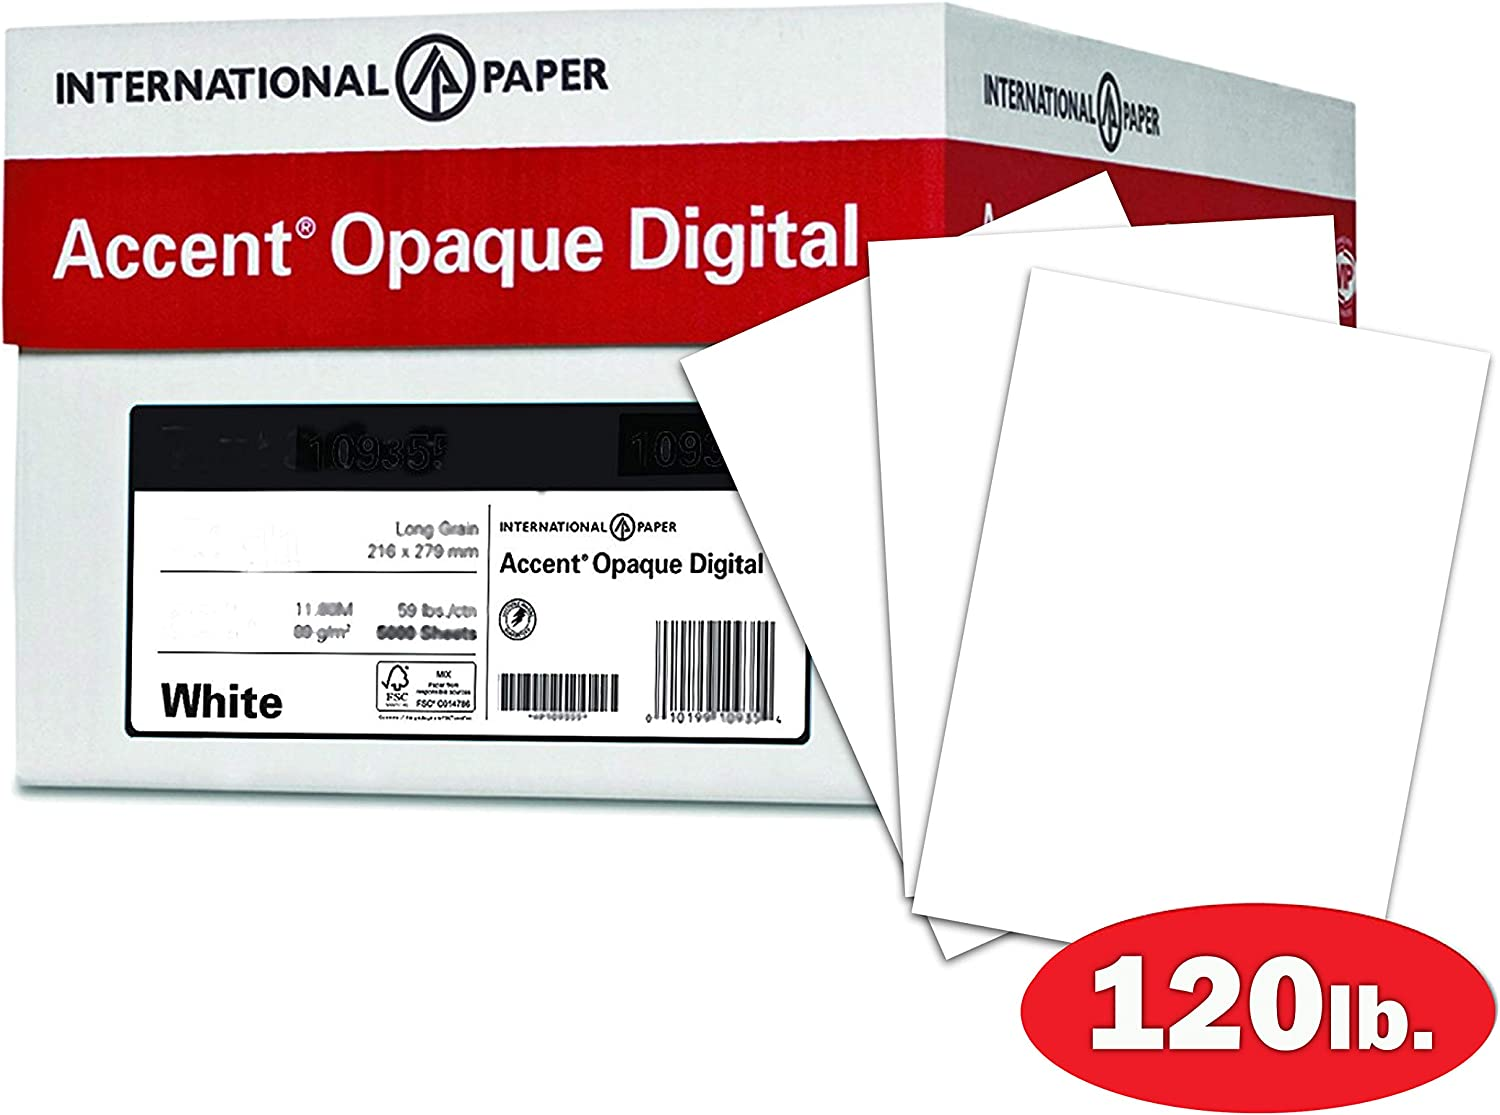 Accent Opaque White Cardstock Paper 271gsm 100lb Cover 188093C Heavy Cardstock with Smooth Finish 11 x 17 card stock 4 Reams // 800 Sheets